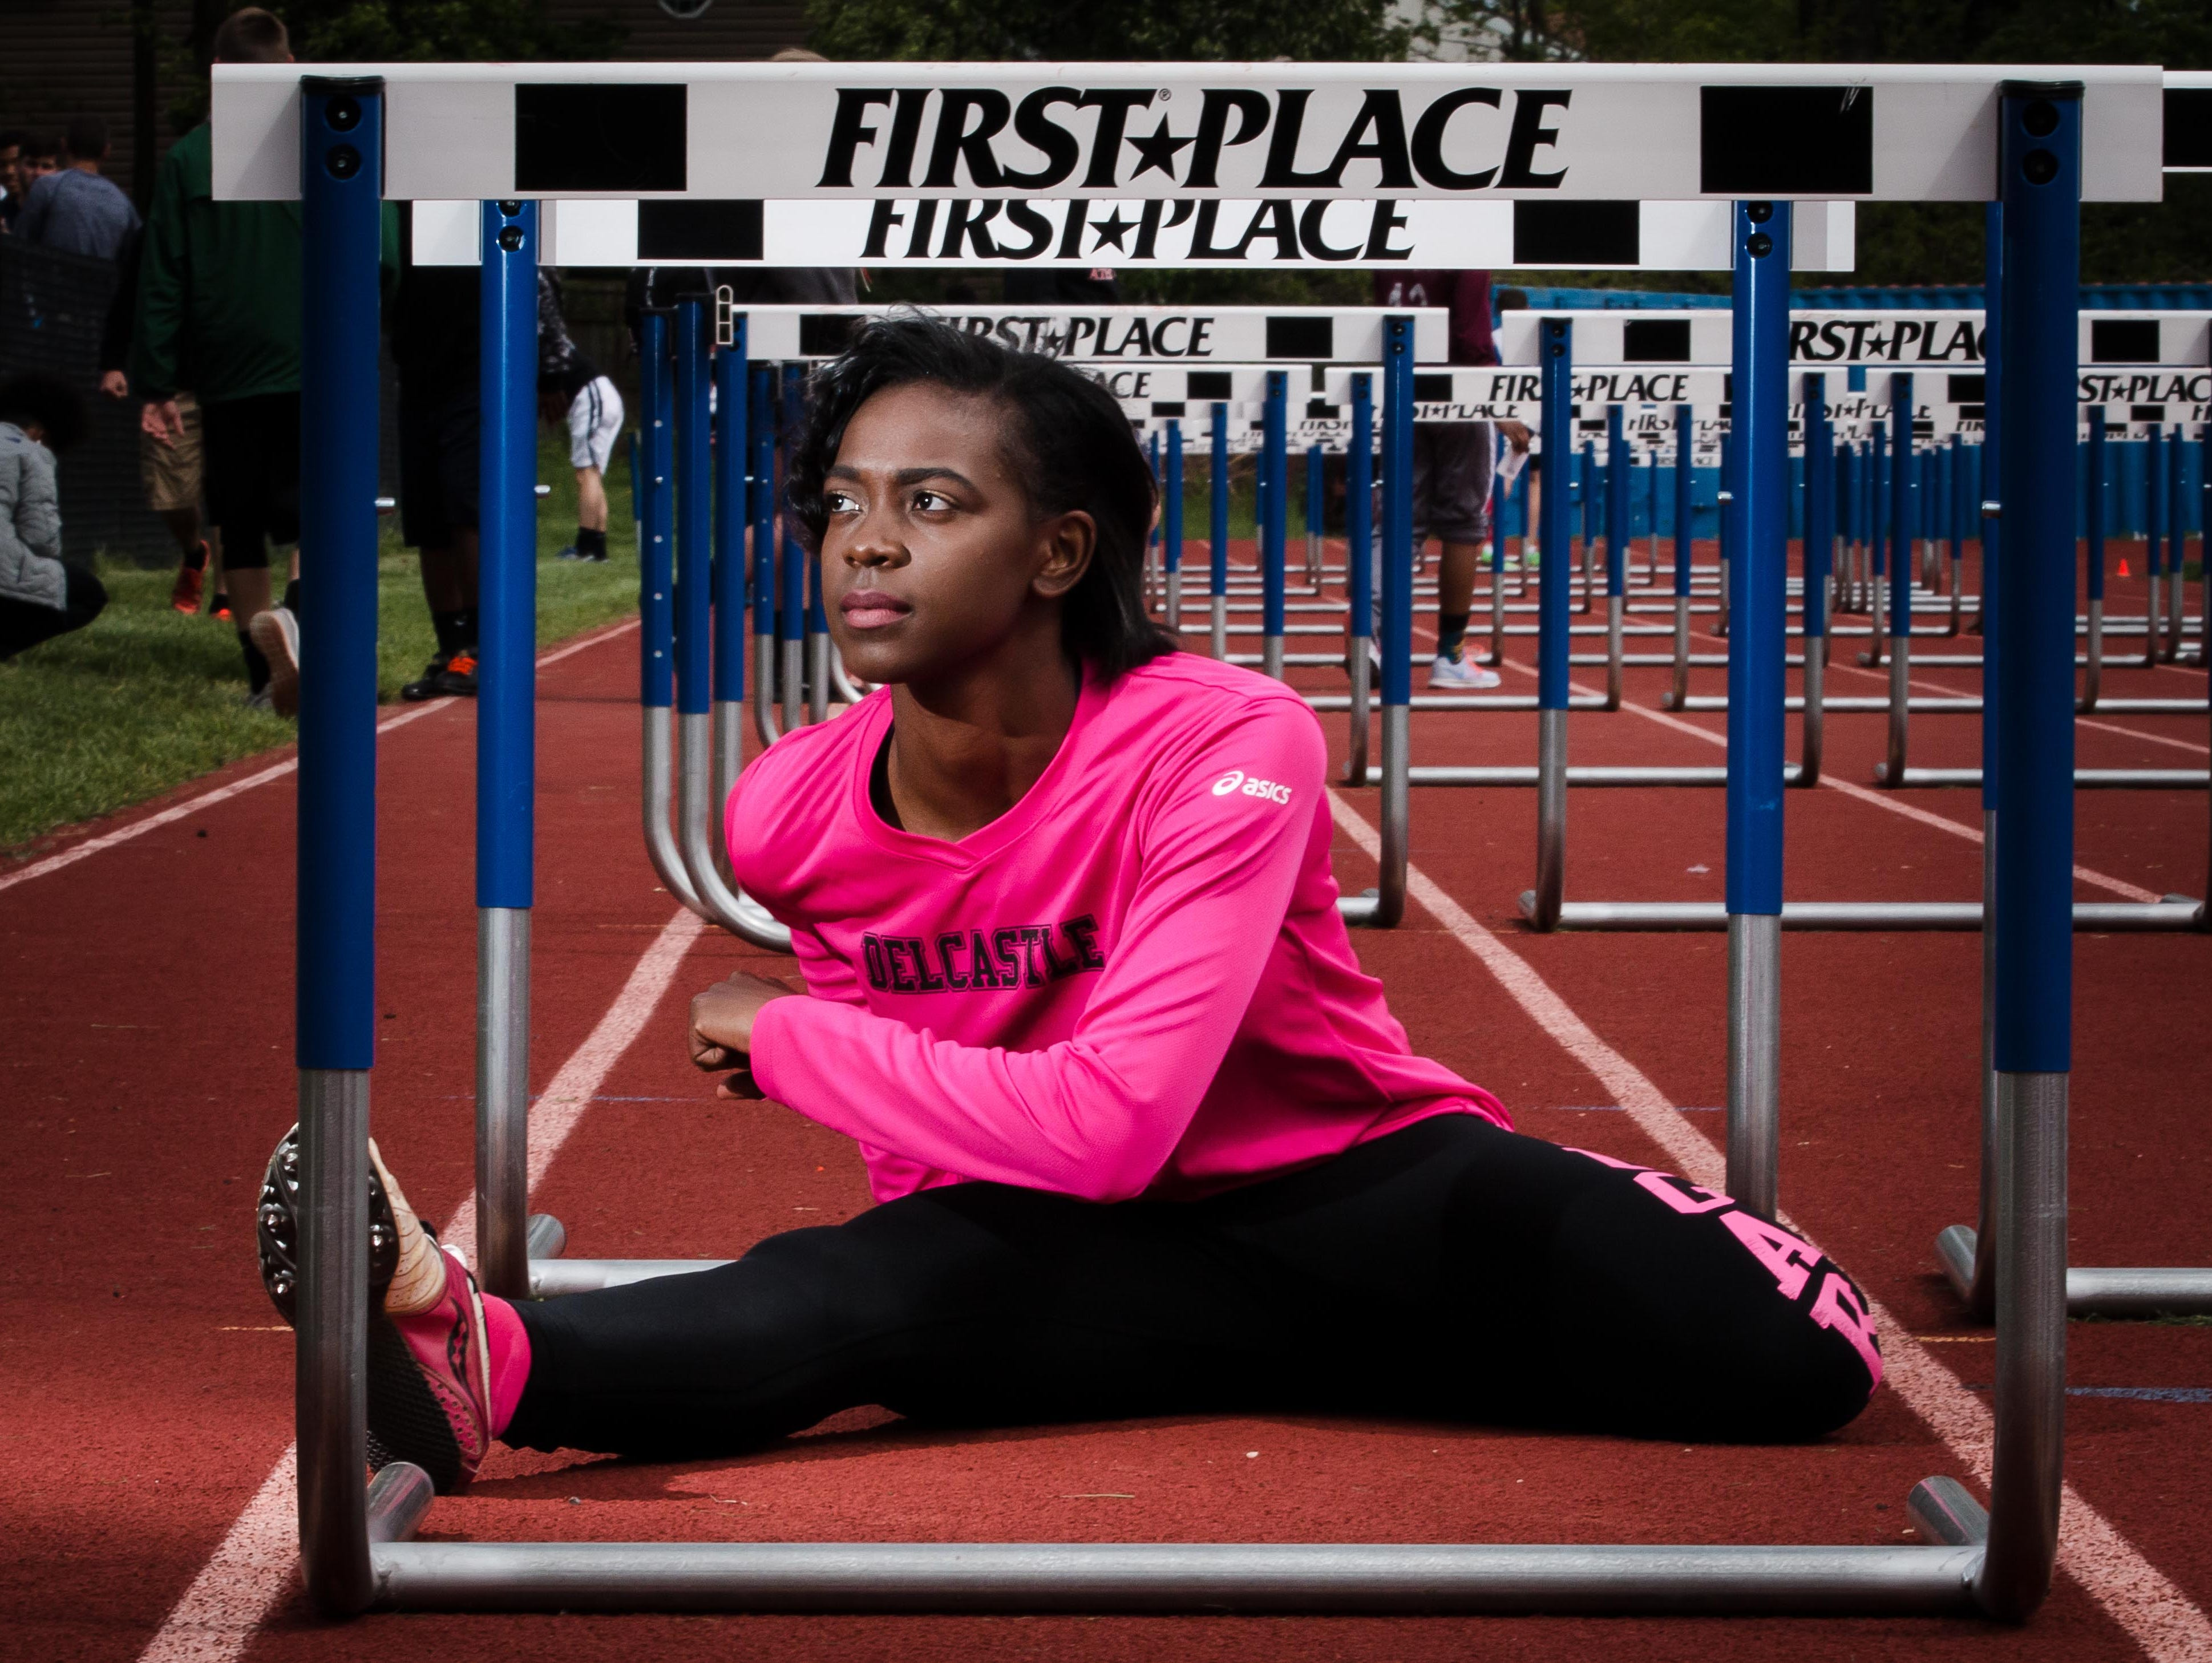 Athlete of the Week Sherita Lowman poses for a photo prior to the Charter Invitational on Monday.